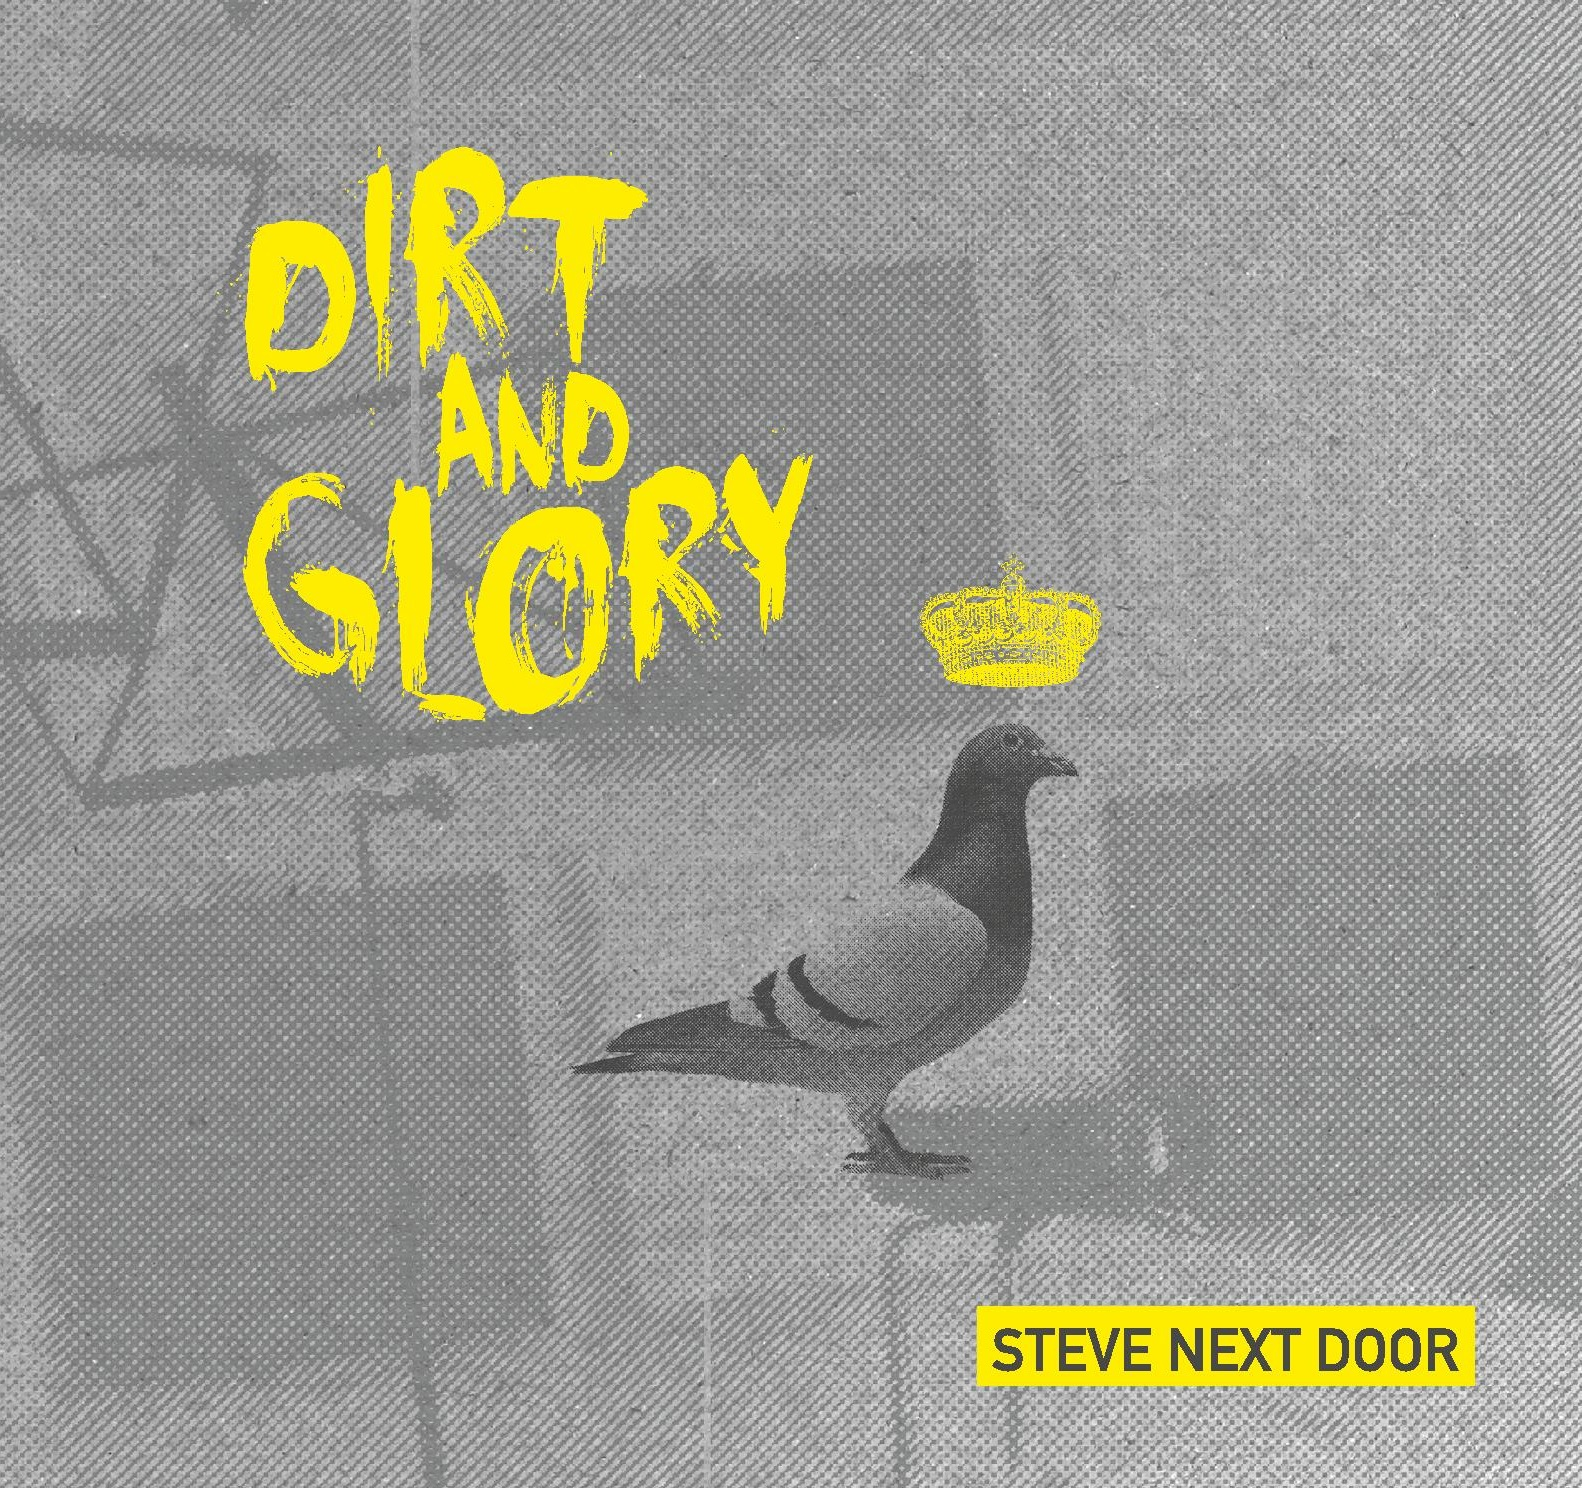 steve next door - dirt and glory